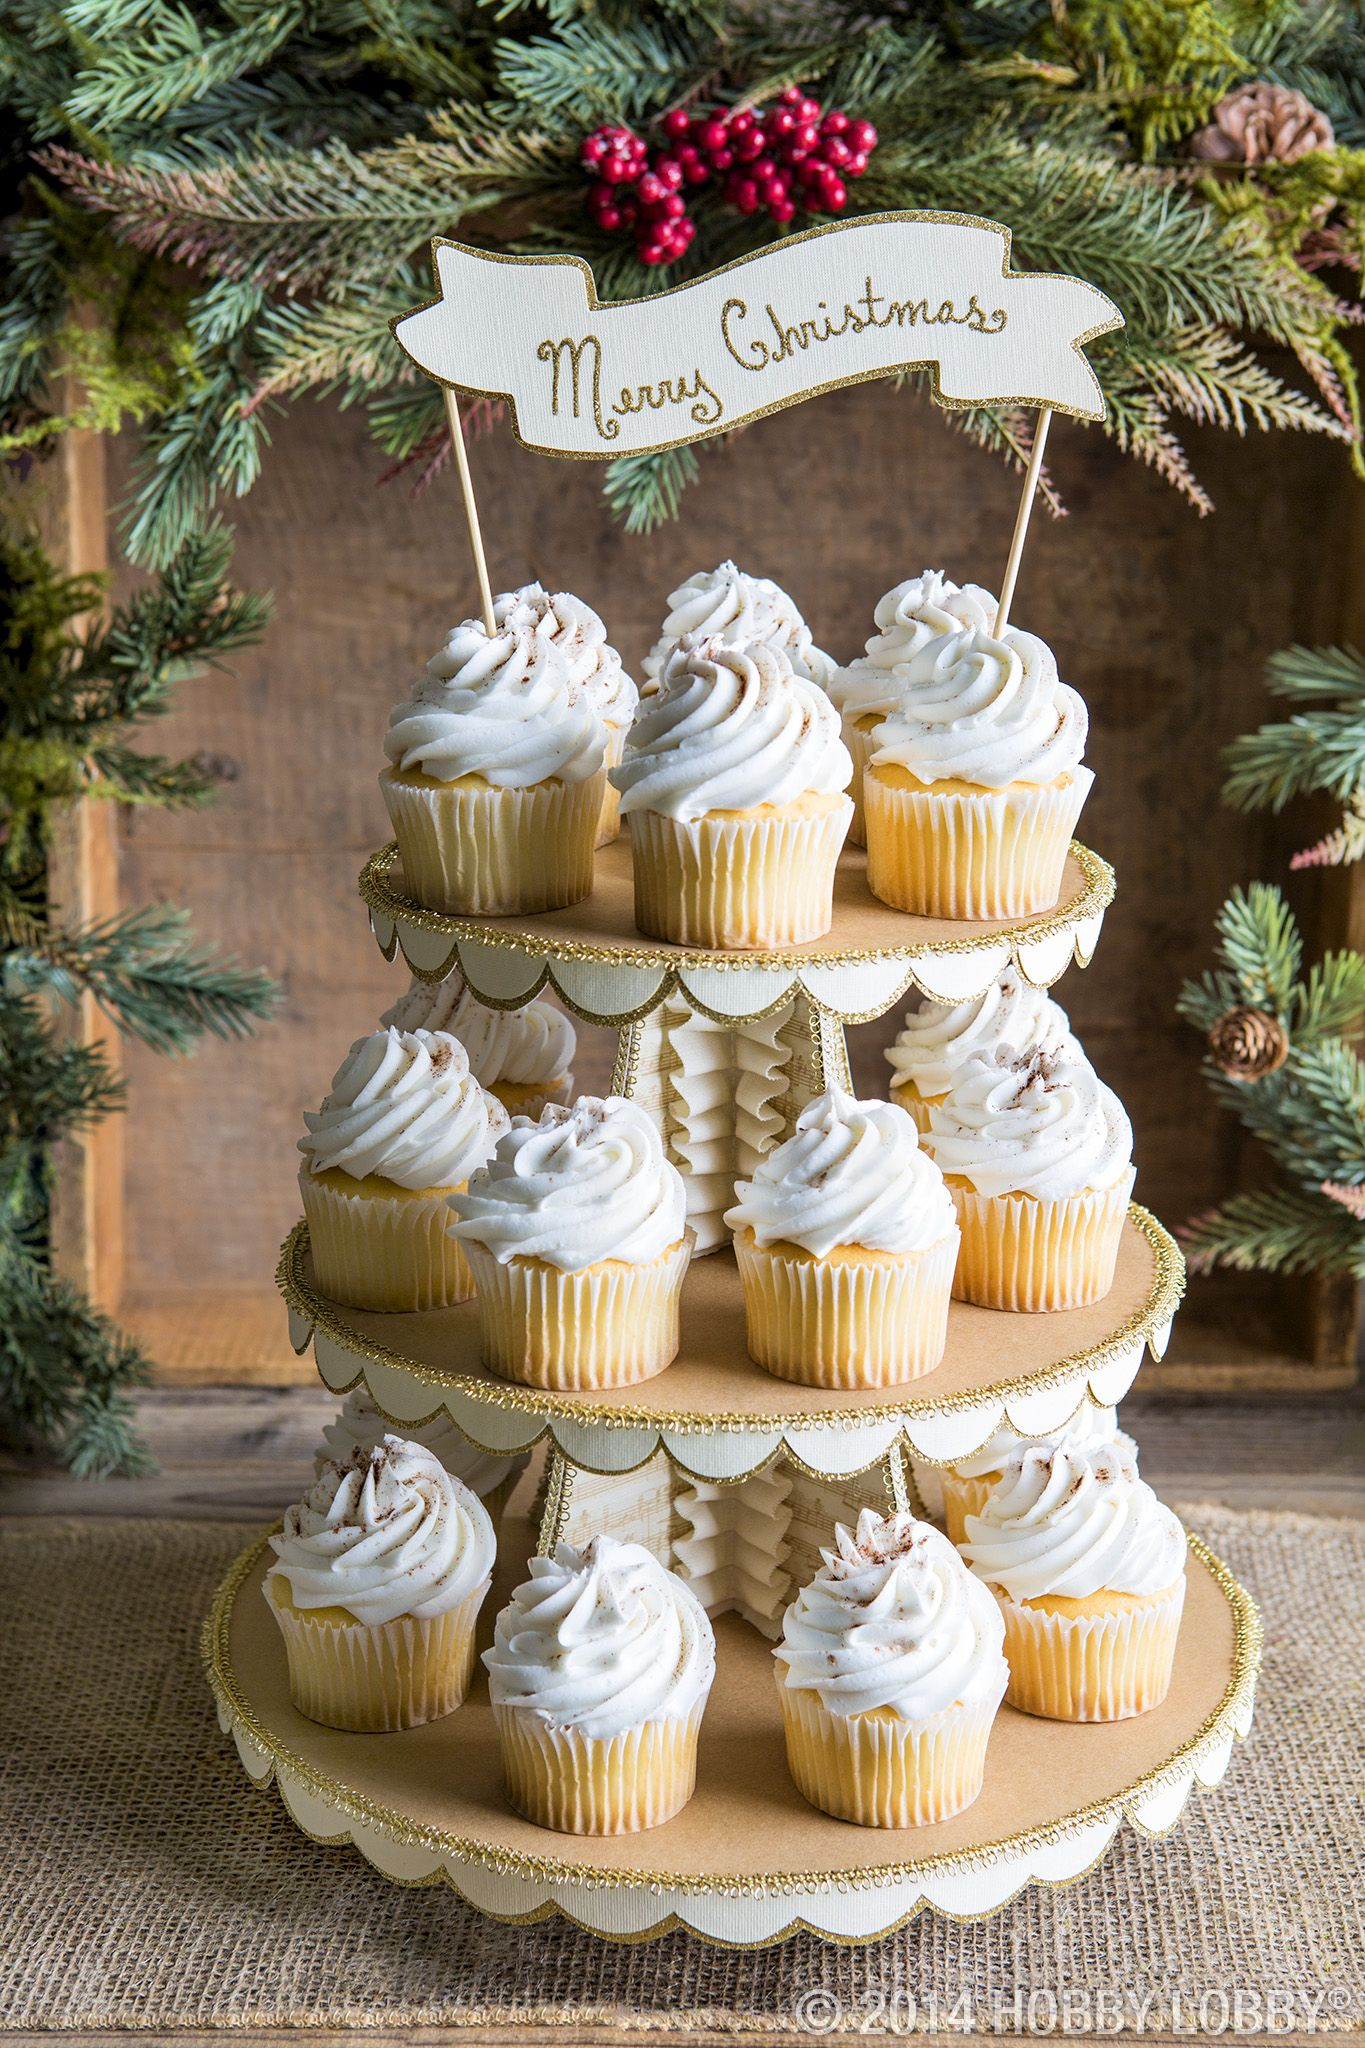 Create a stylish cupcake stand this year by covering a